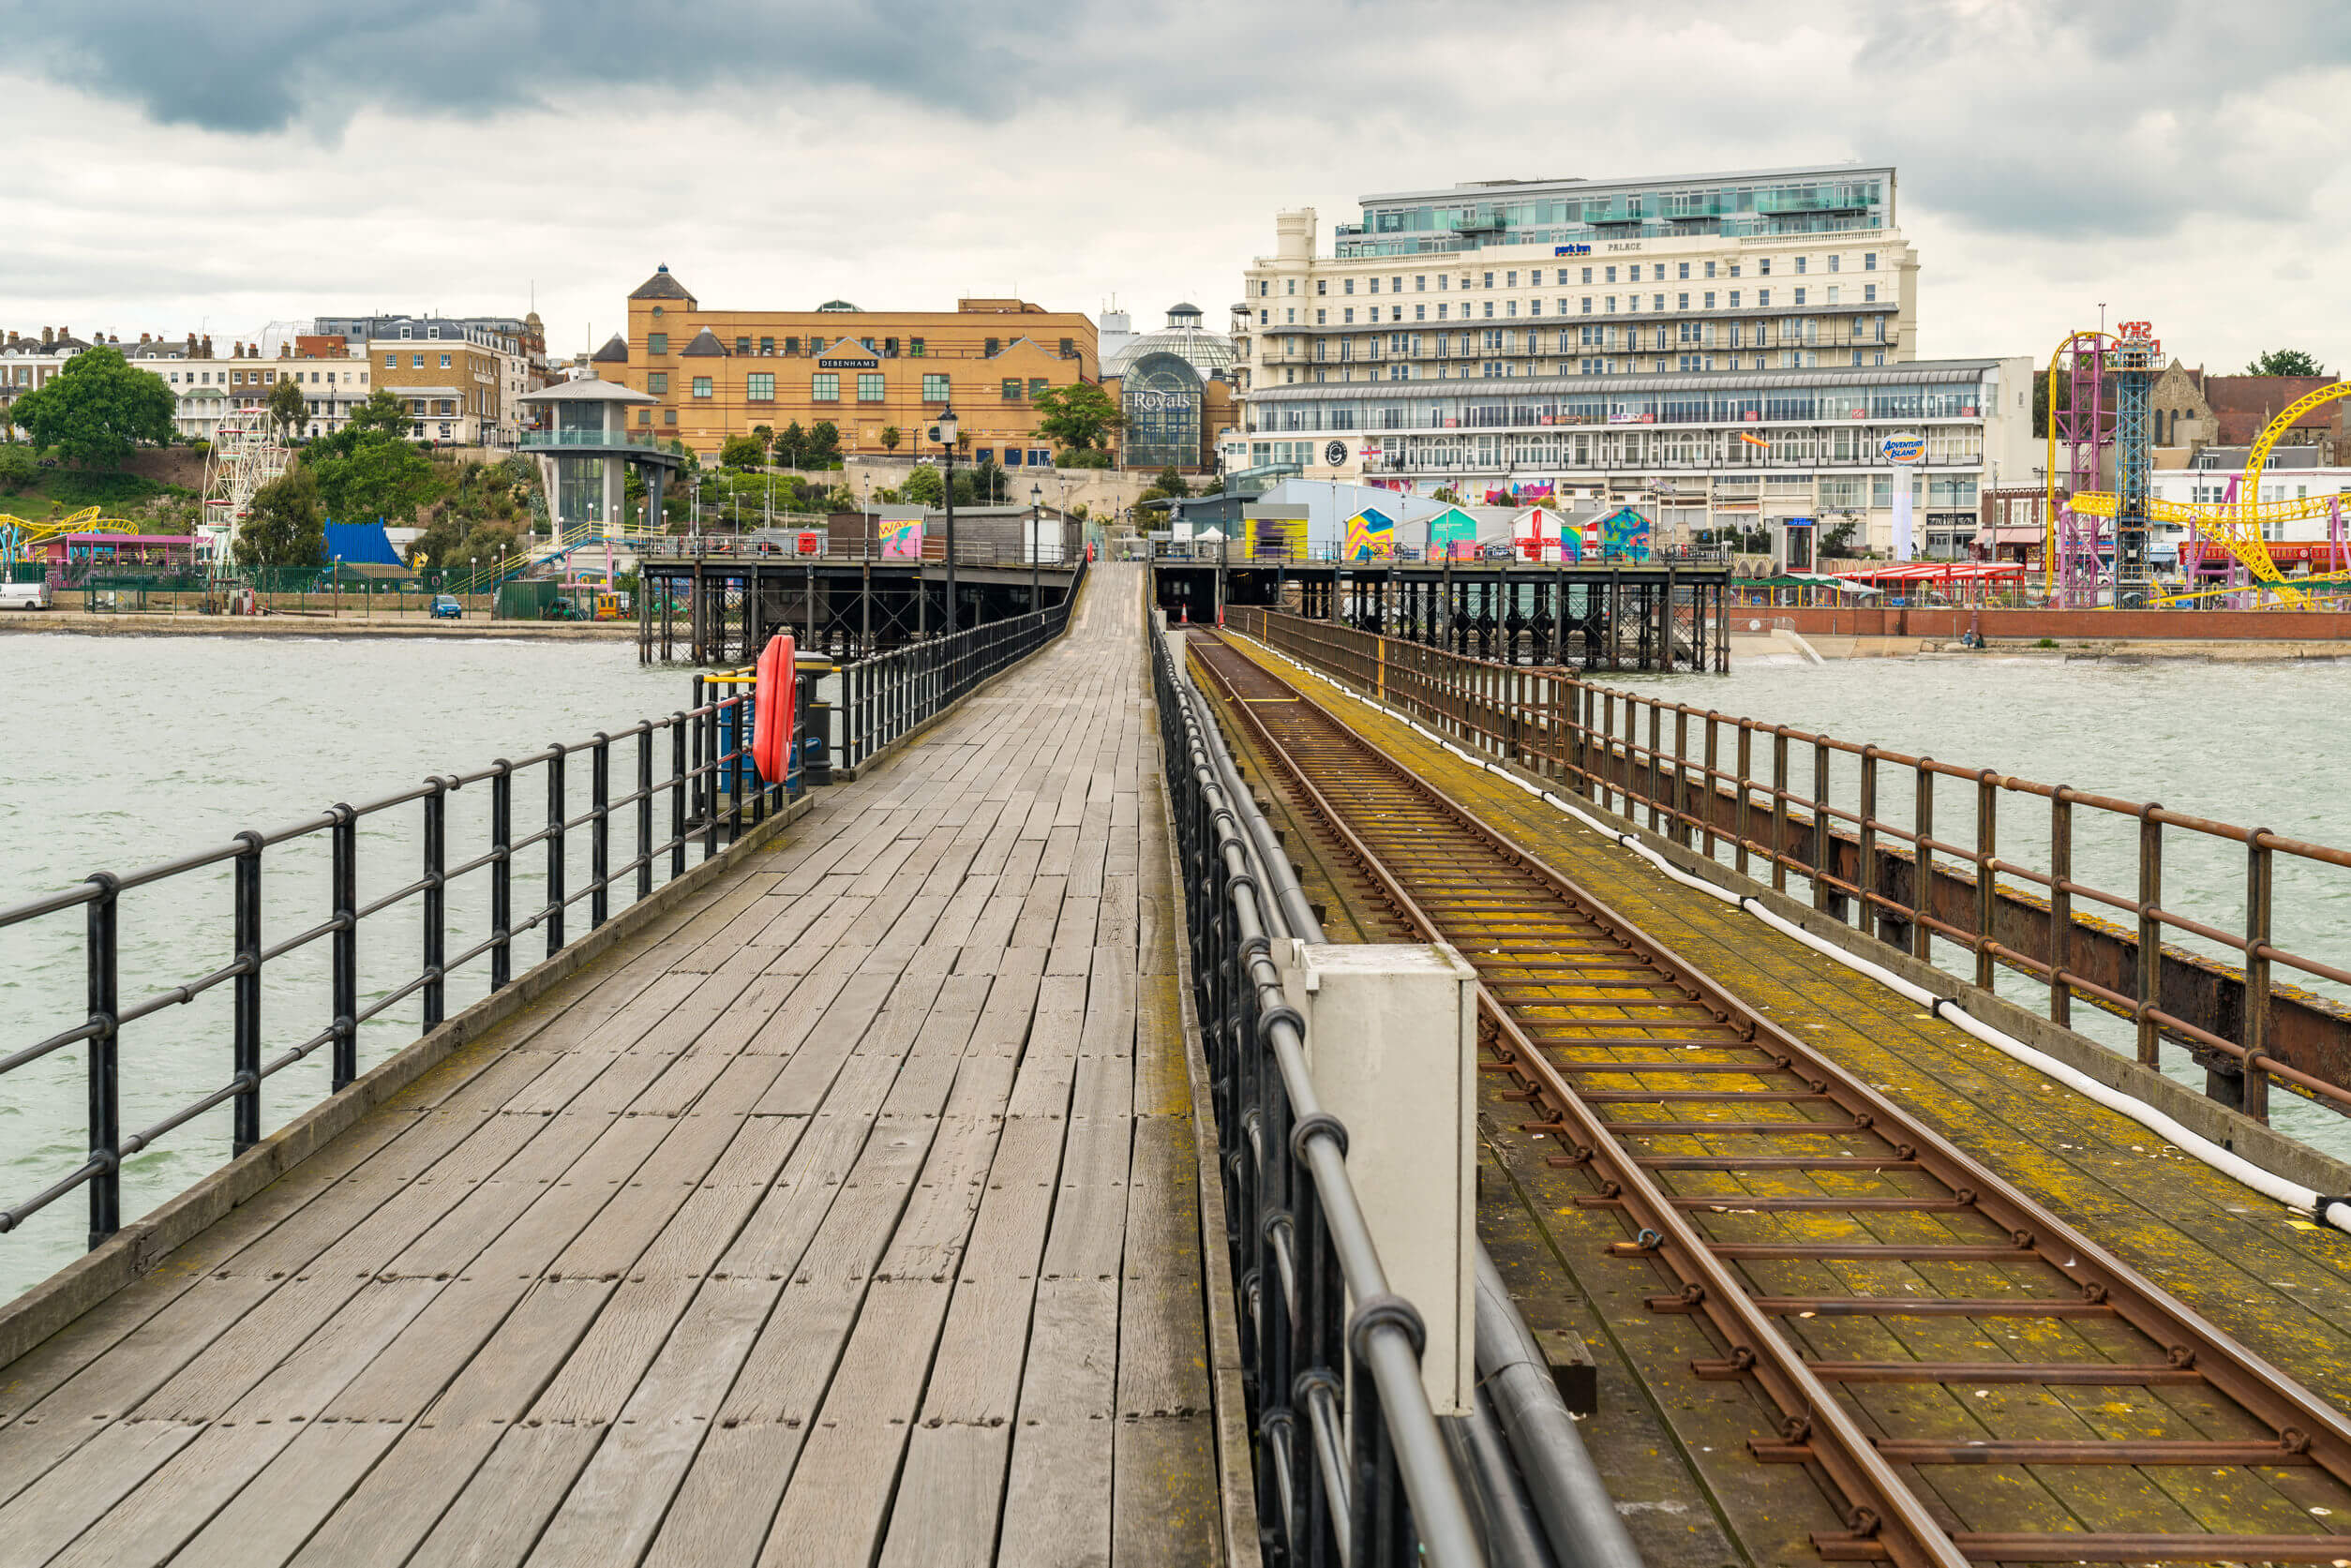 Southend-on-Sea, Essex, England, UK - May 30, 2017: View from Southend Pier towards Southend